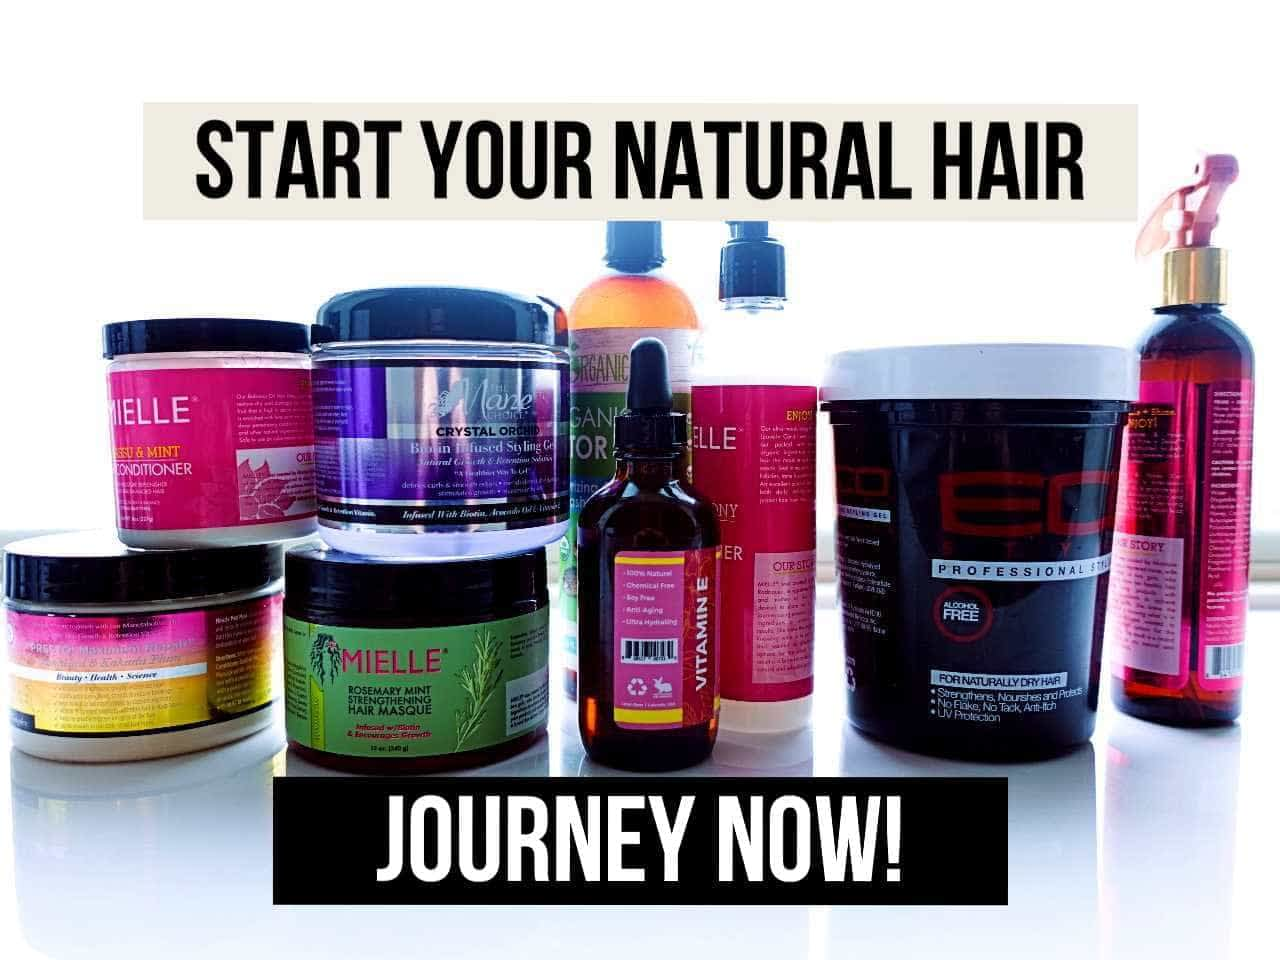 5 REASONS WHY YOU SHOULD START A NATURAL HAIR JOURNEY!